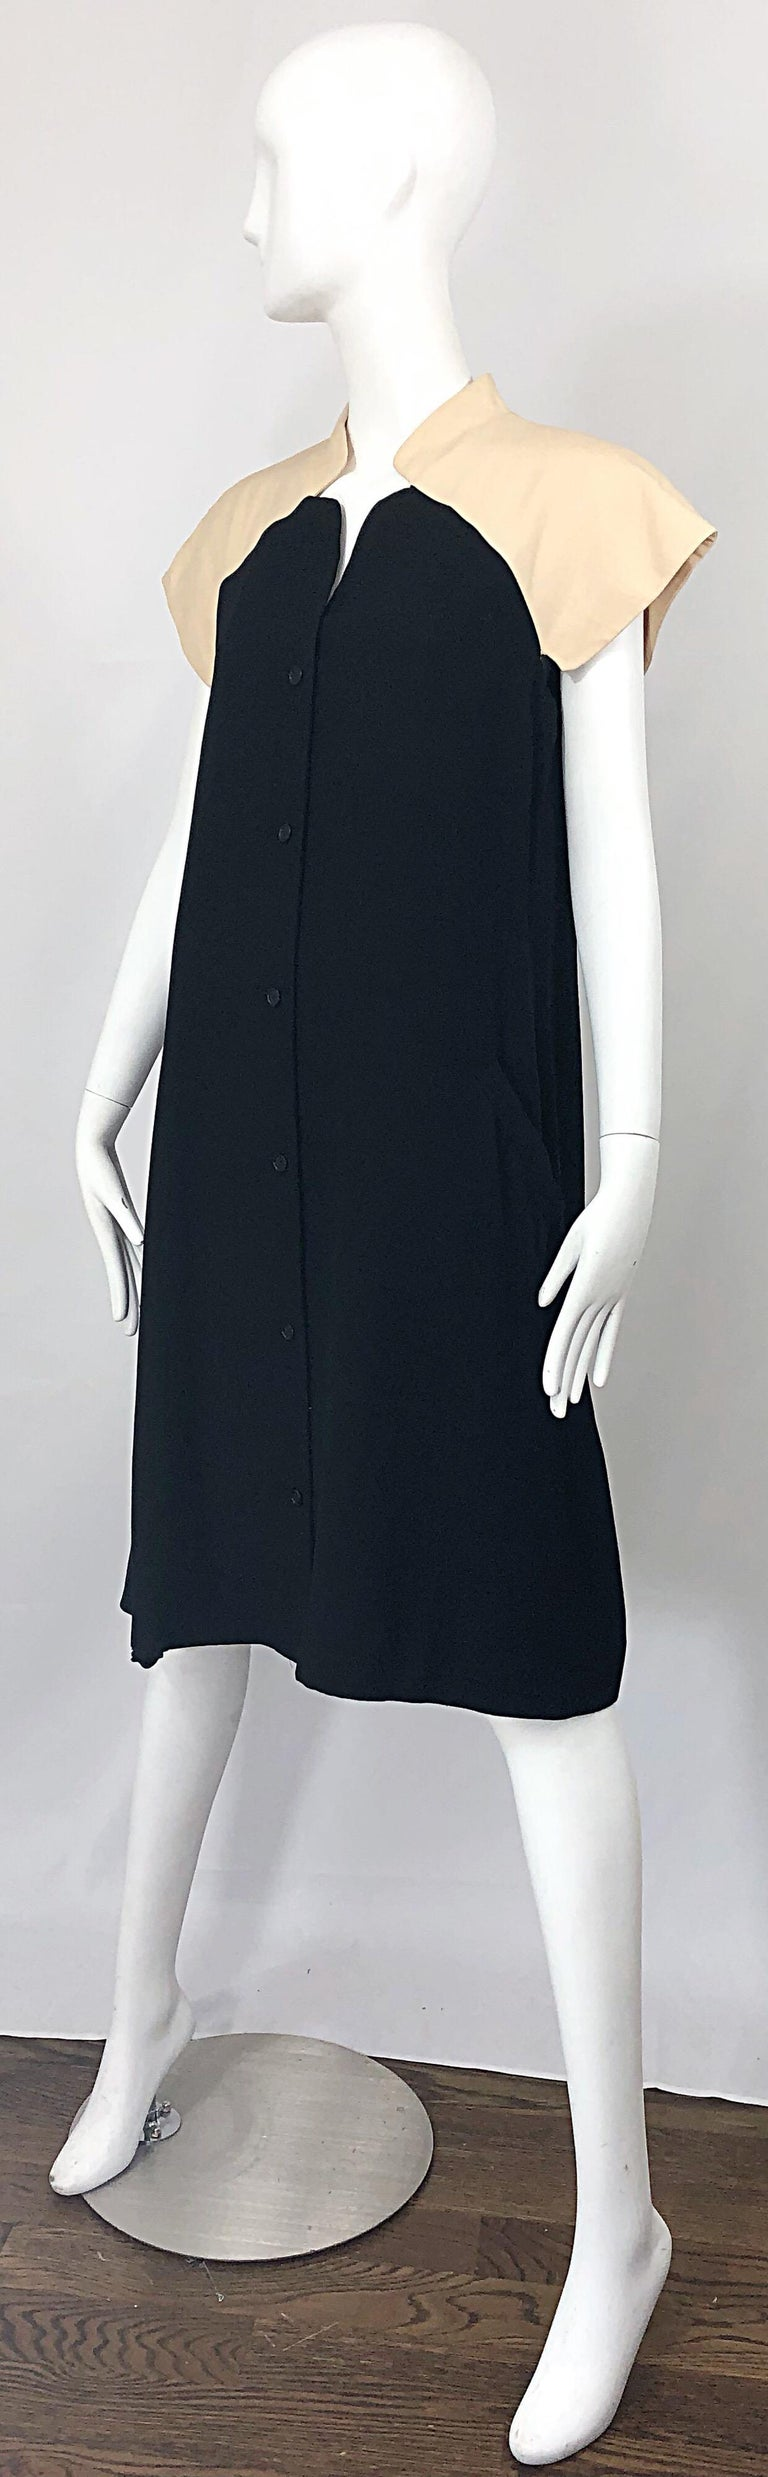 Vintage Halston 1970s Optical Illusion Black + Khaki 70s Trapeze Dress For Sale 5